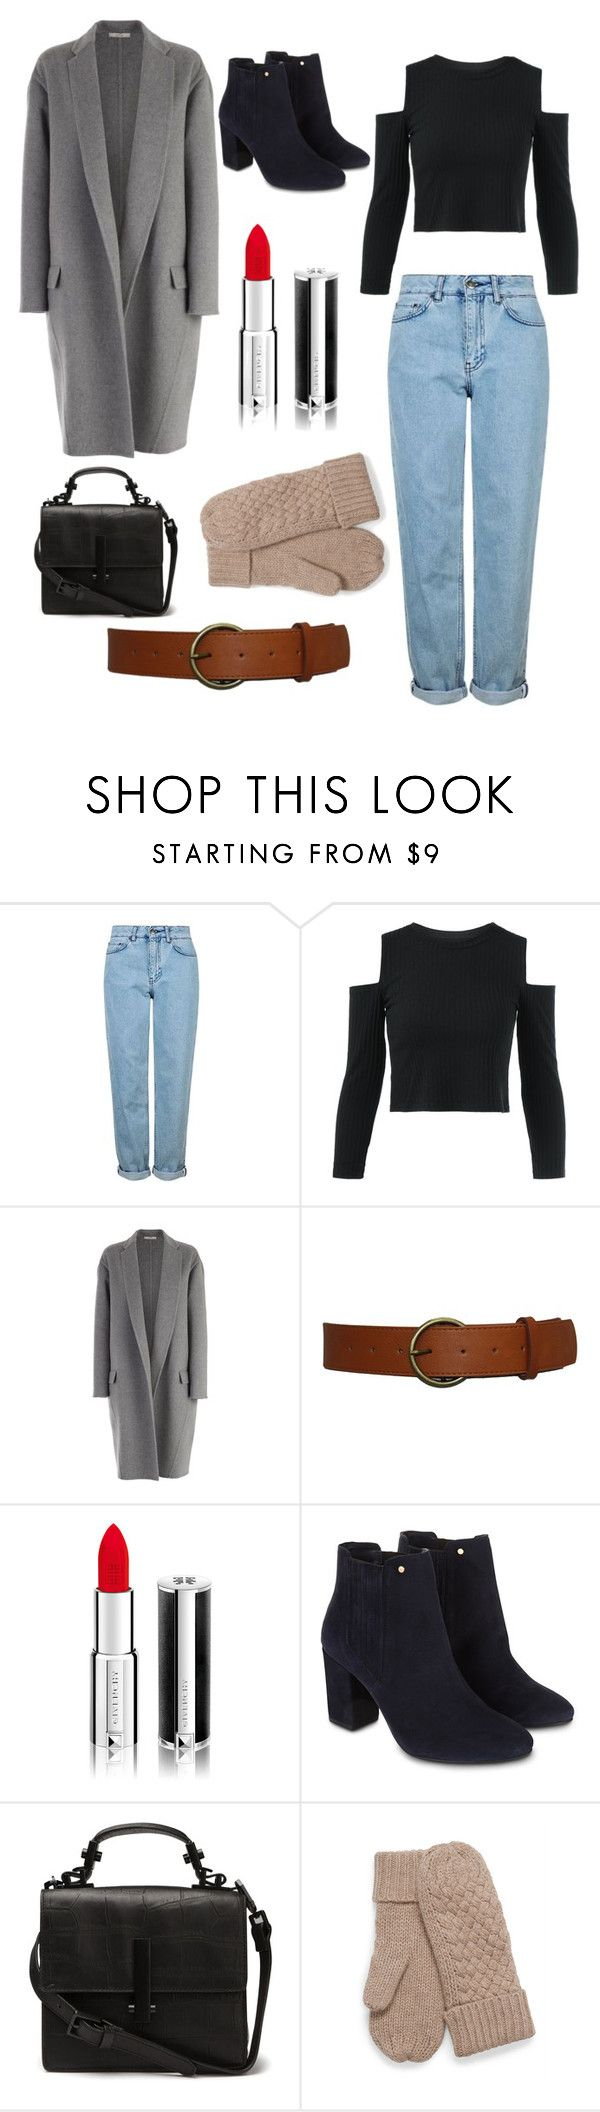 """Noora Saetre skam style"" by annaanderson20616 ❤ liked on Polyvore featuring Topshop, CÉLINE, Givenchy and Monsoon"